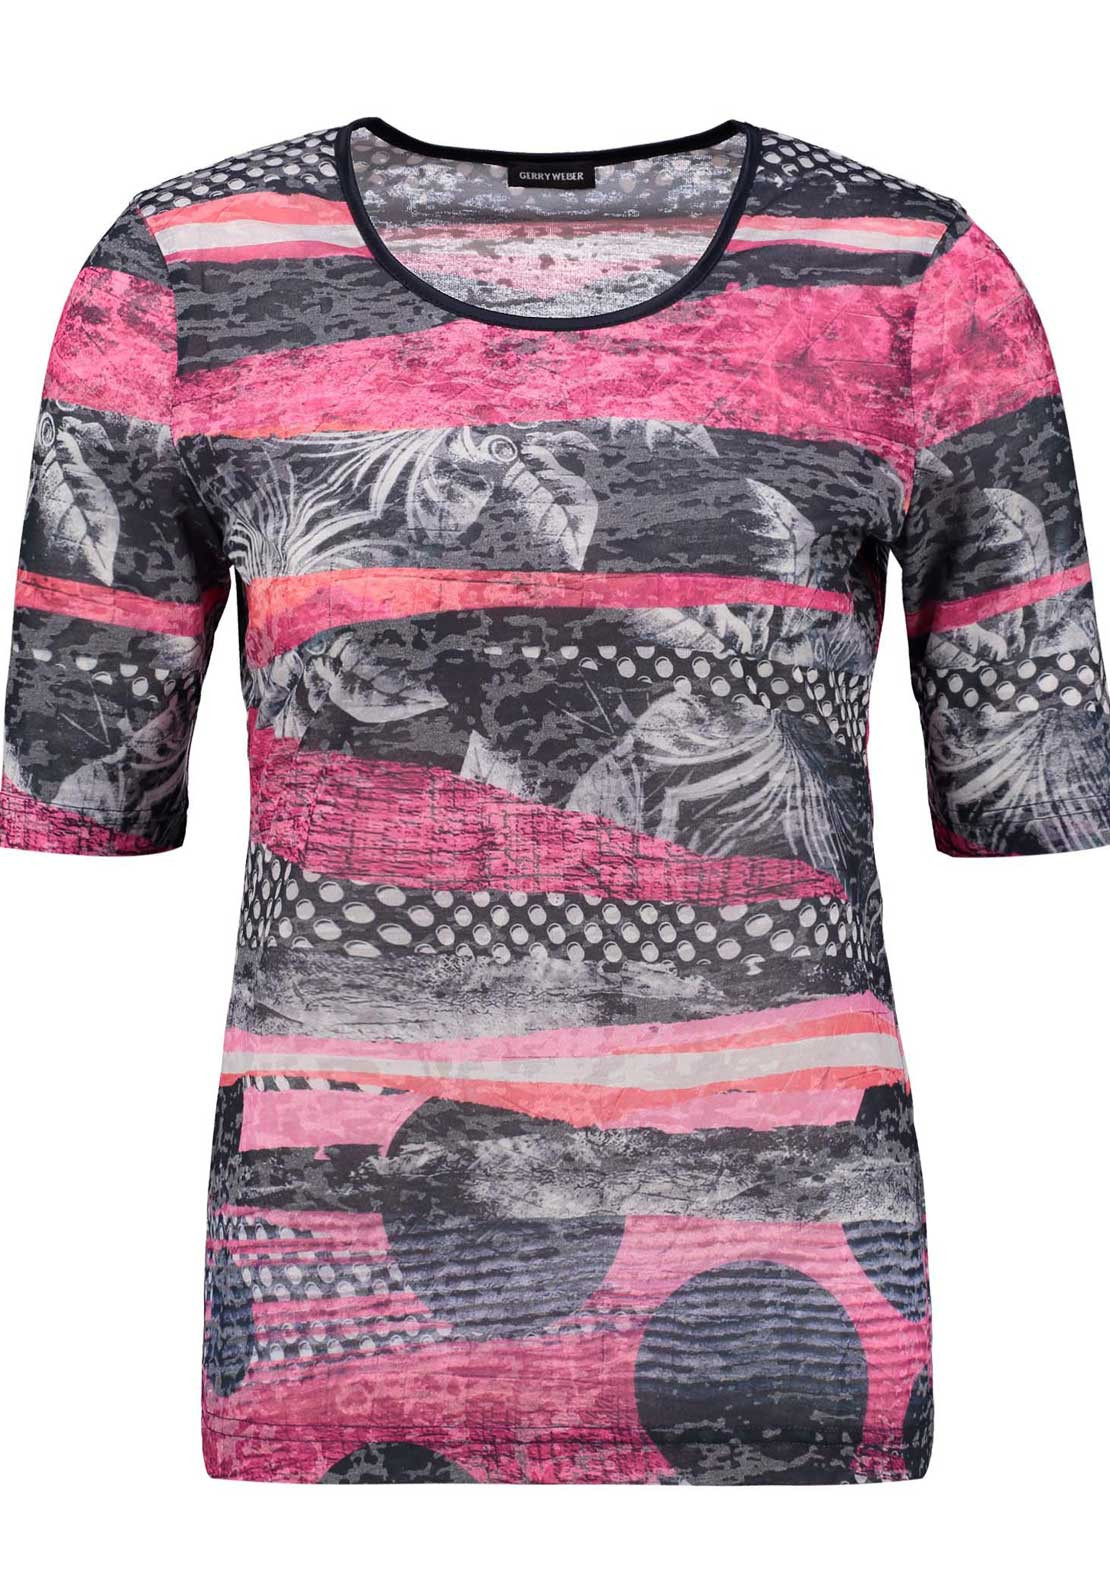 Gerry Weber Print Top, Multi Coloured